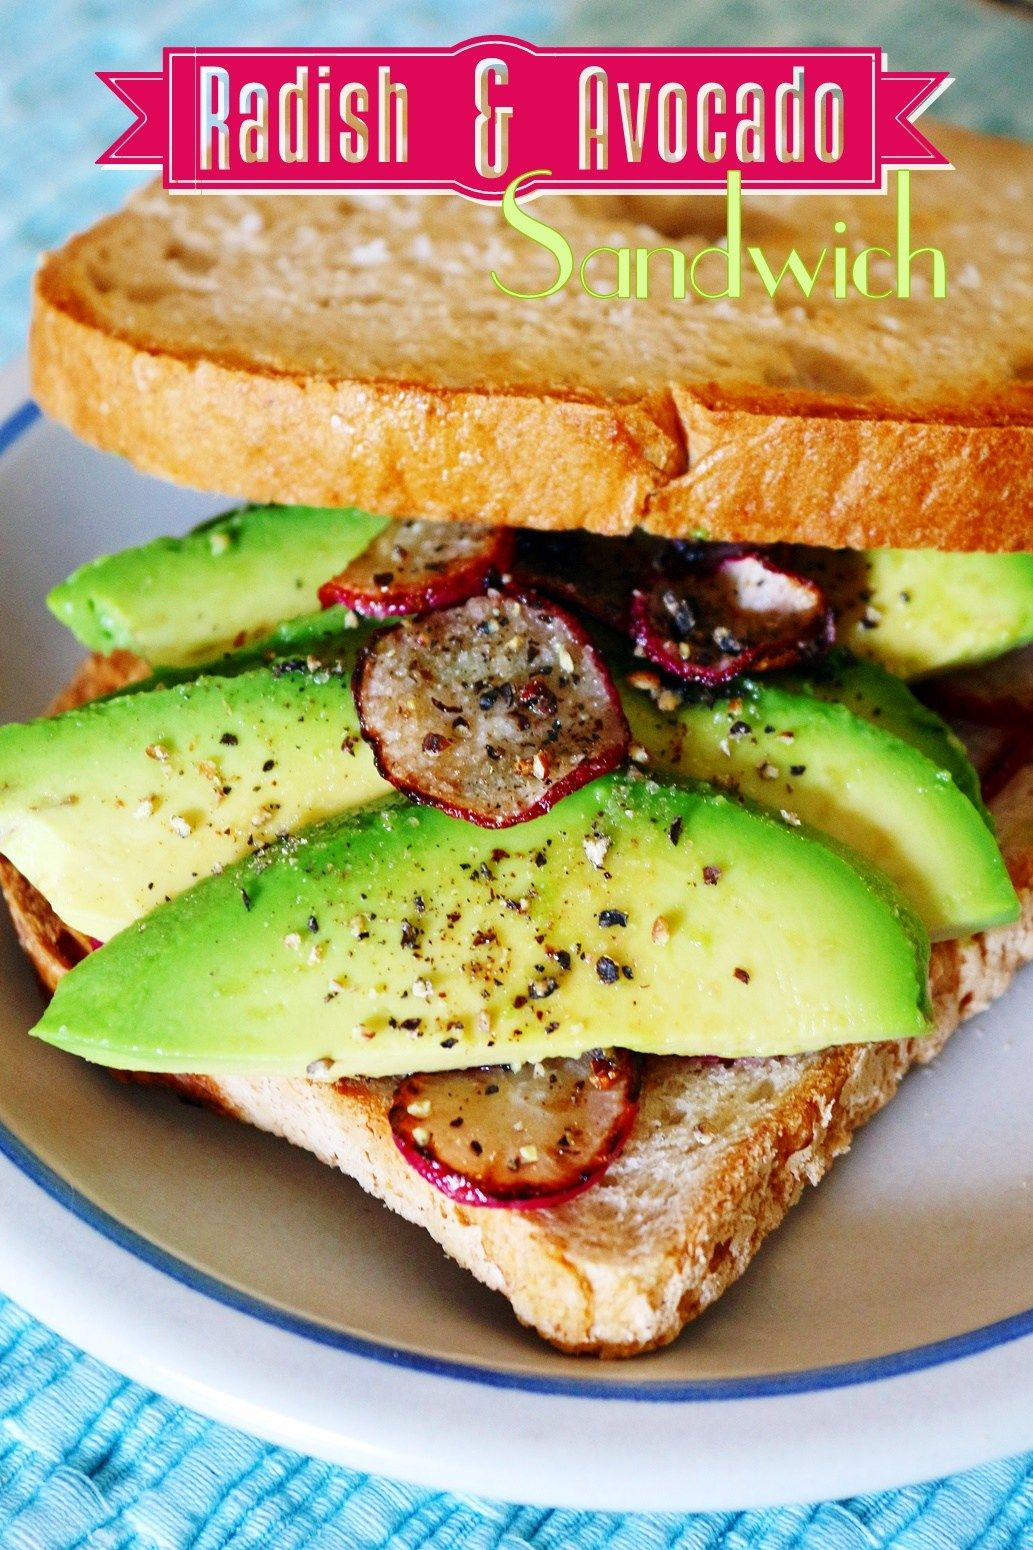 Radish Avocado Sandwich Quick Easy Vegan Plant Based Lunch Planted365 Recipe In 2020 Avocado Sandwich Quick Easy Vegan Vegan Breakfast Easy